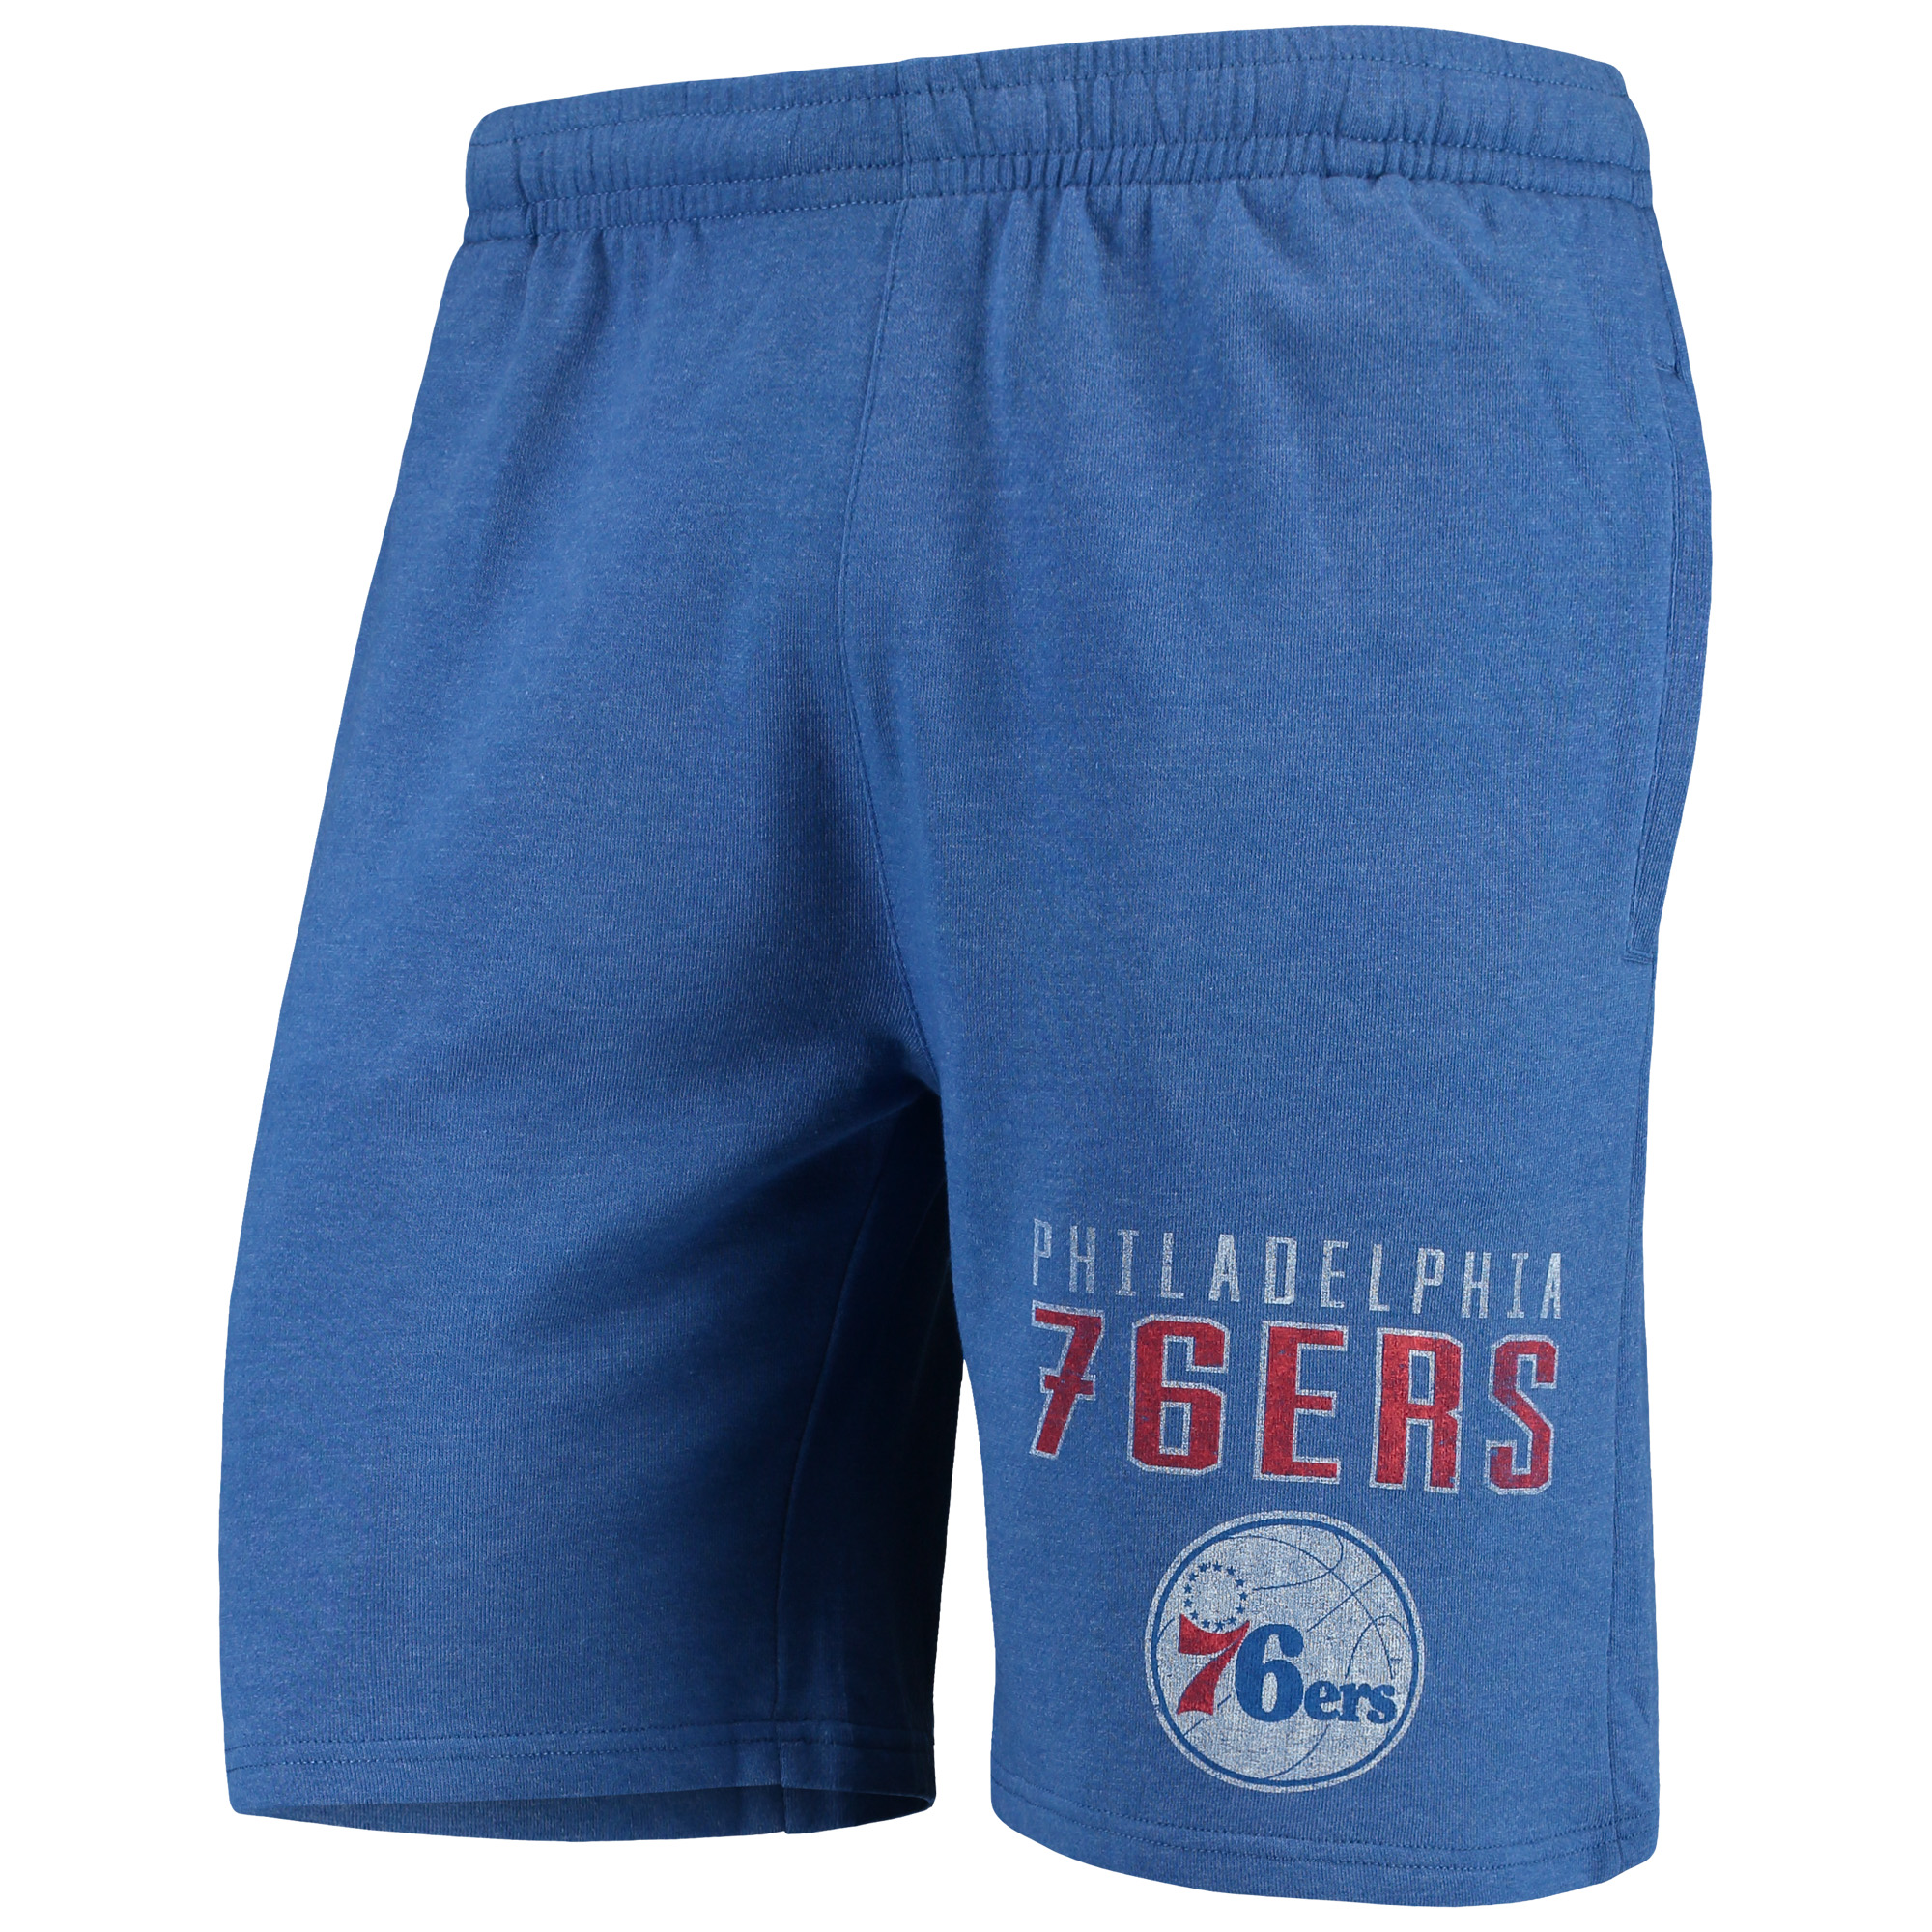 Philadelphia 76ers Concepts Sport Squeeze Play Knit Shorts - Heathered Royal